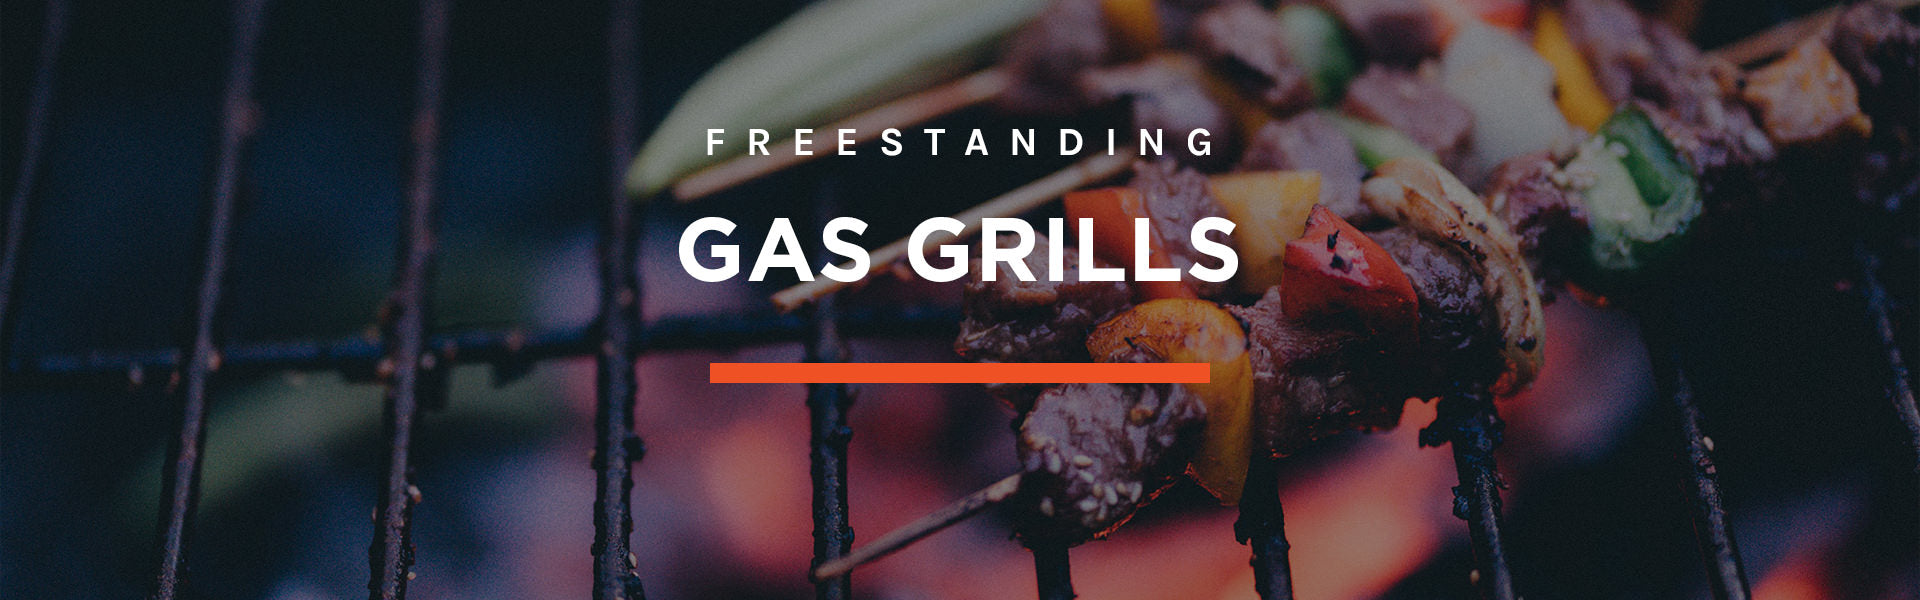 Gas Grills / Freestanding